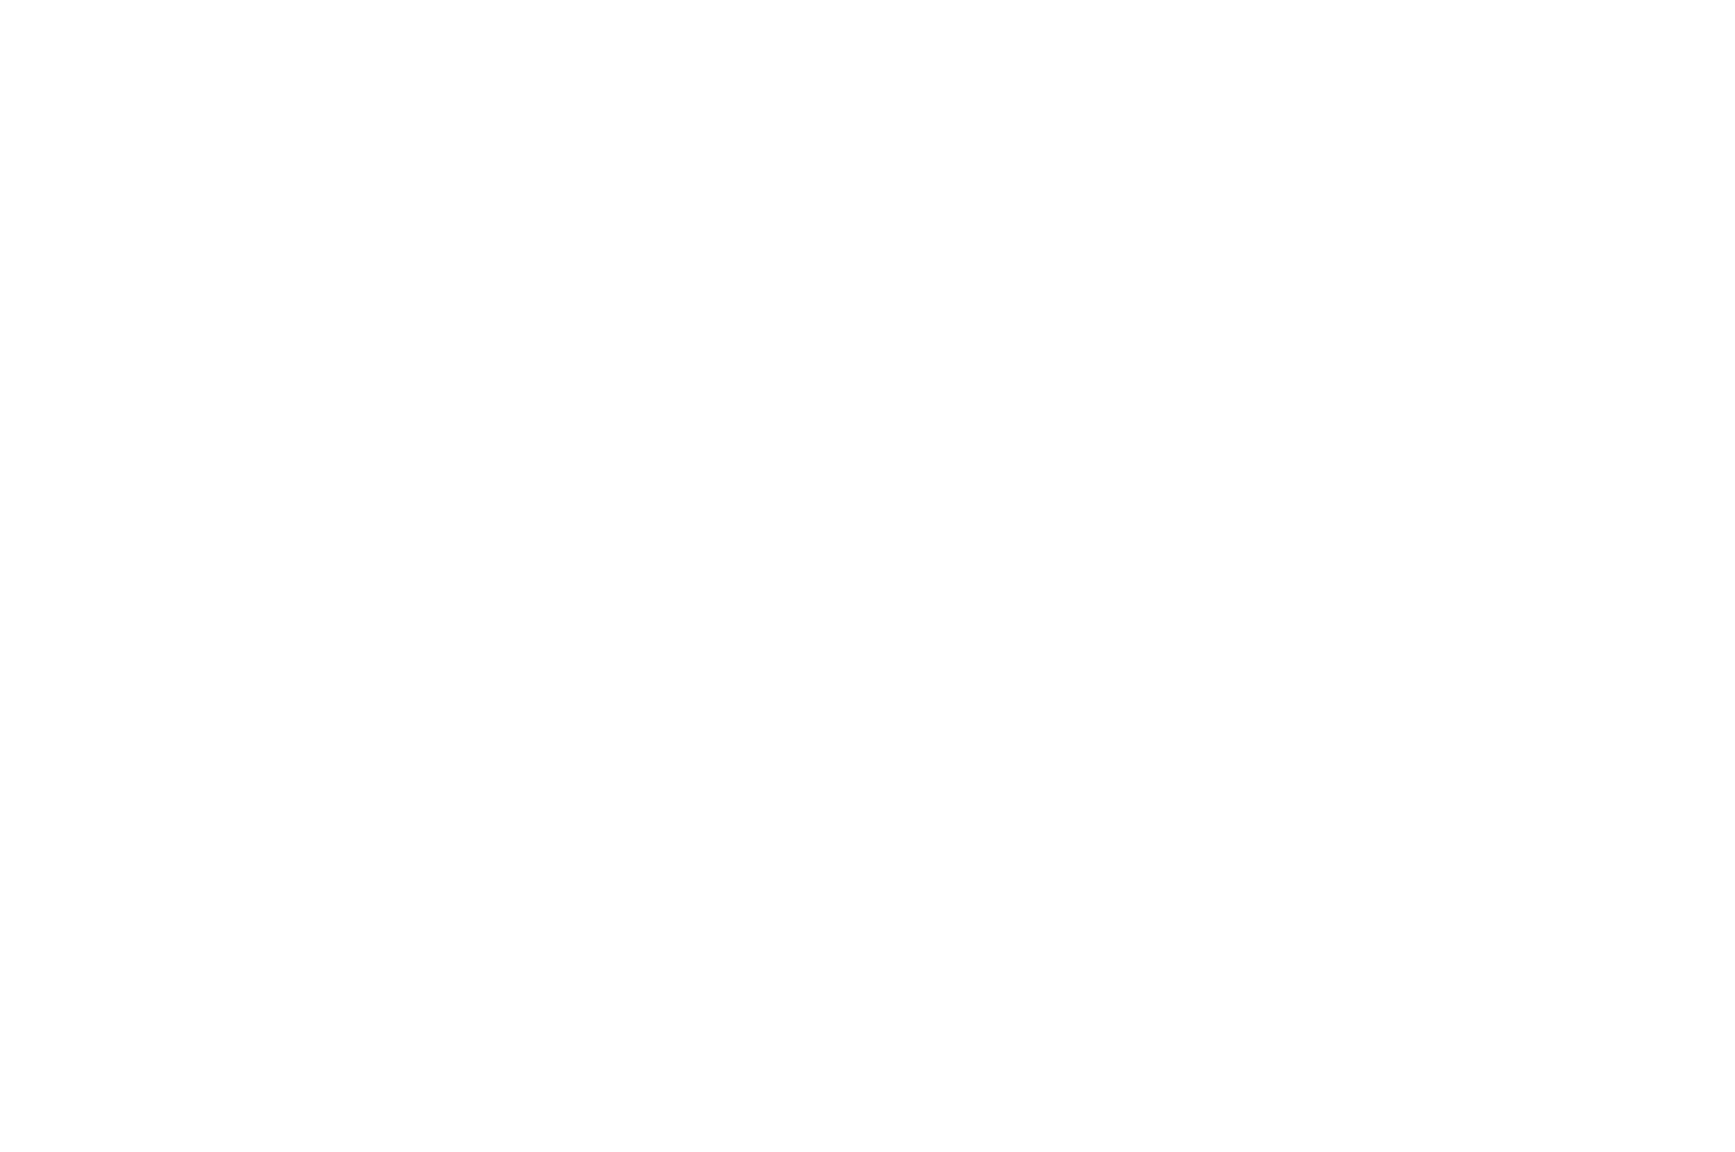 Official Selection - SOMA Film Festival 2018